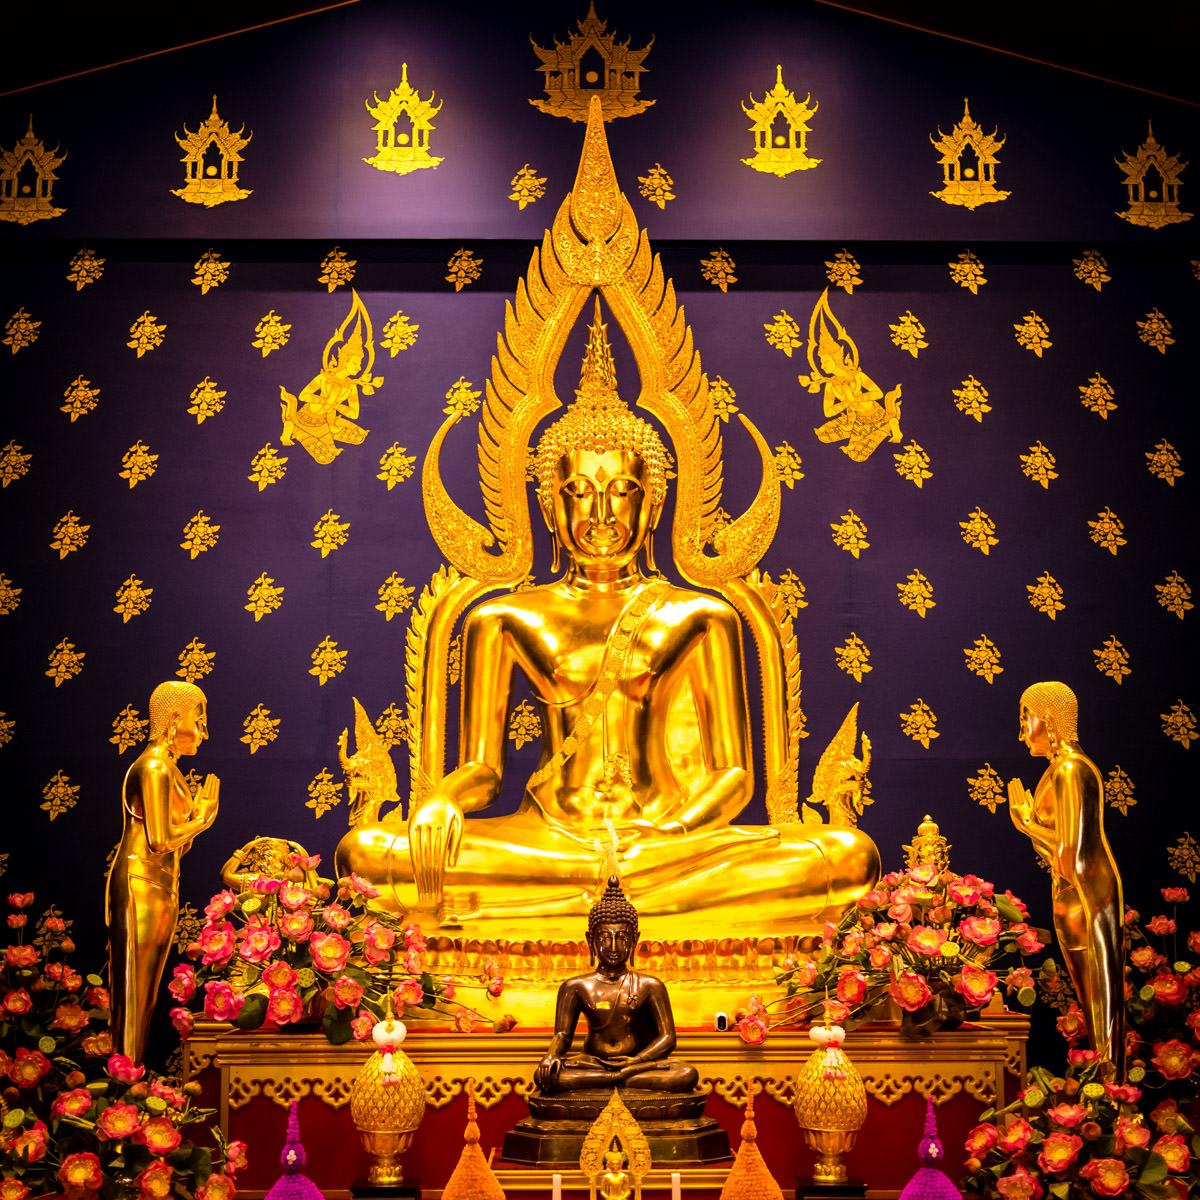 A gold statue of the Buddha in the shrine at the Buddhist Center of Dallas.